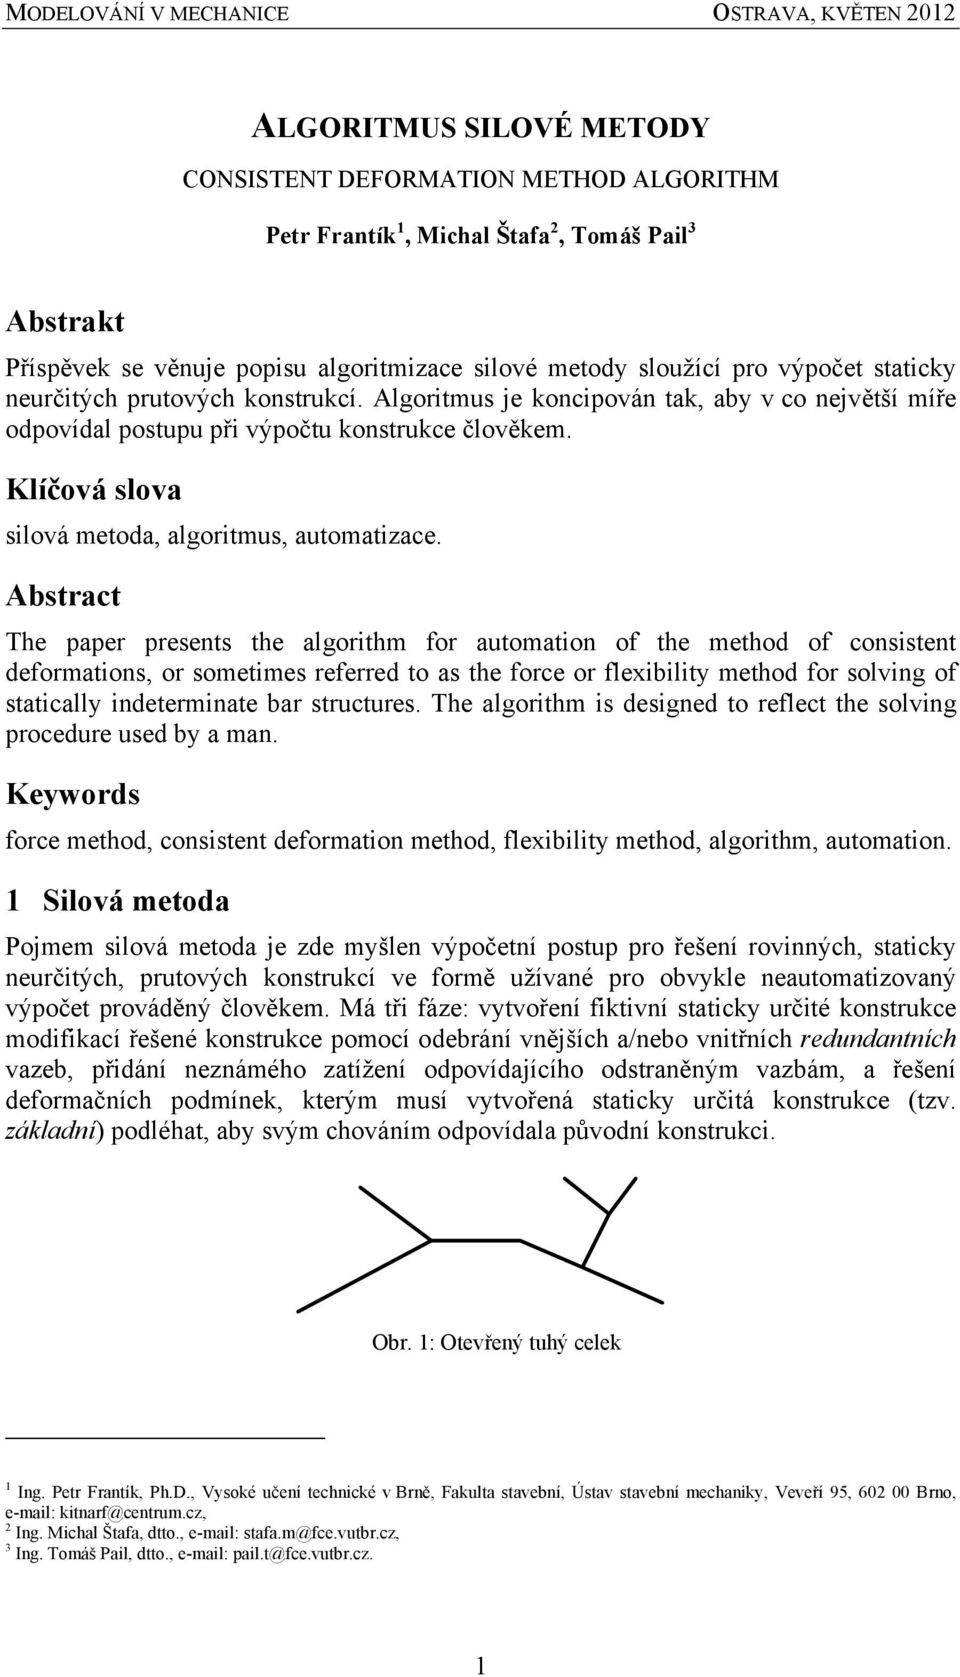 Abstract The paper presents the algorthm for automaton of the method of consstent deformatons, or sometmes referred to as the force or flexblty method for solvng of statcally ndetermnate bar